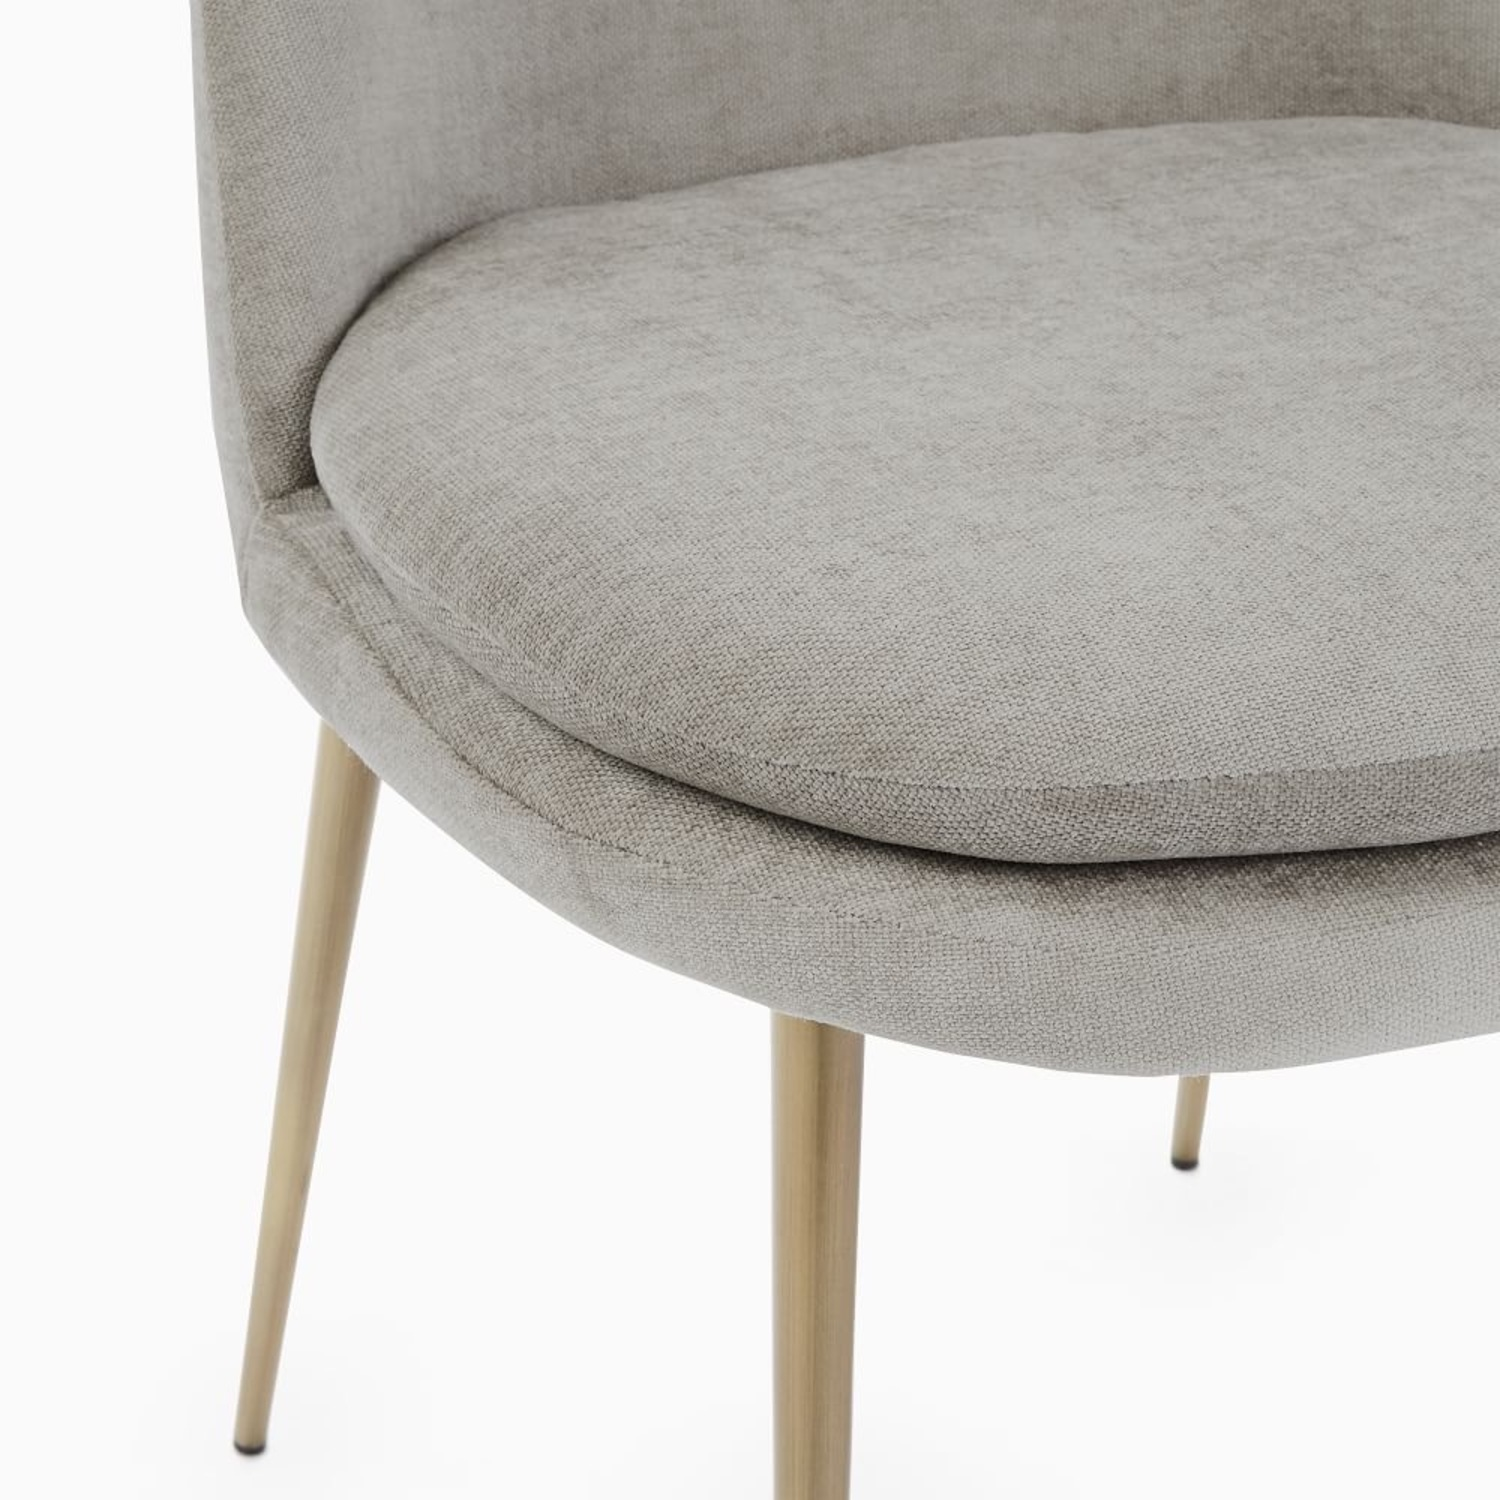 West Elm Finley Dining Chair - image-2